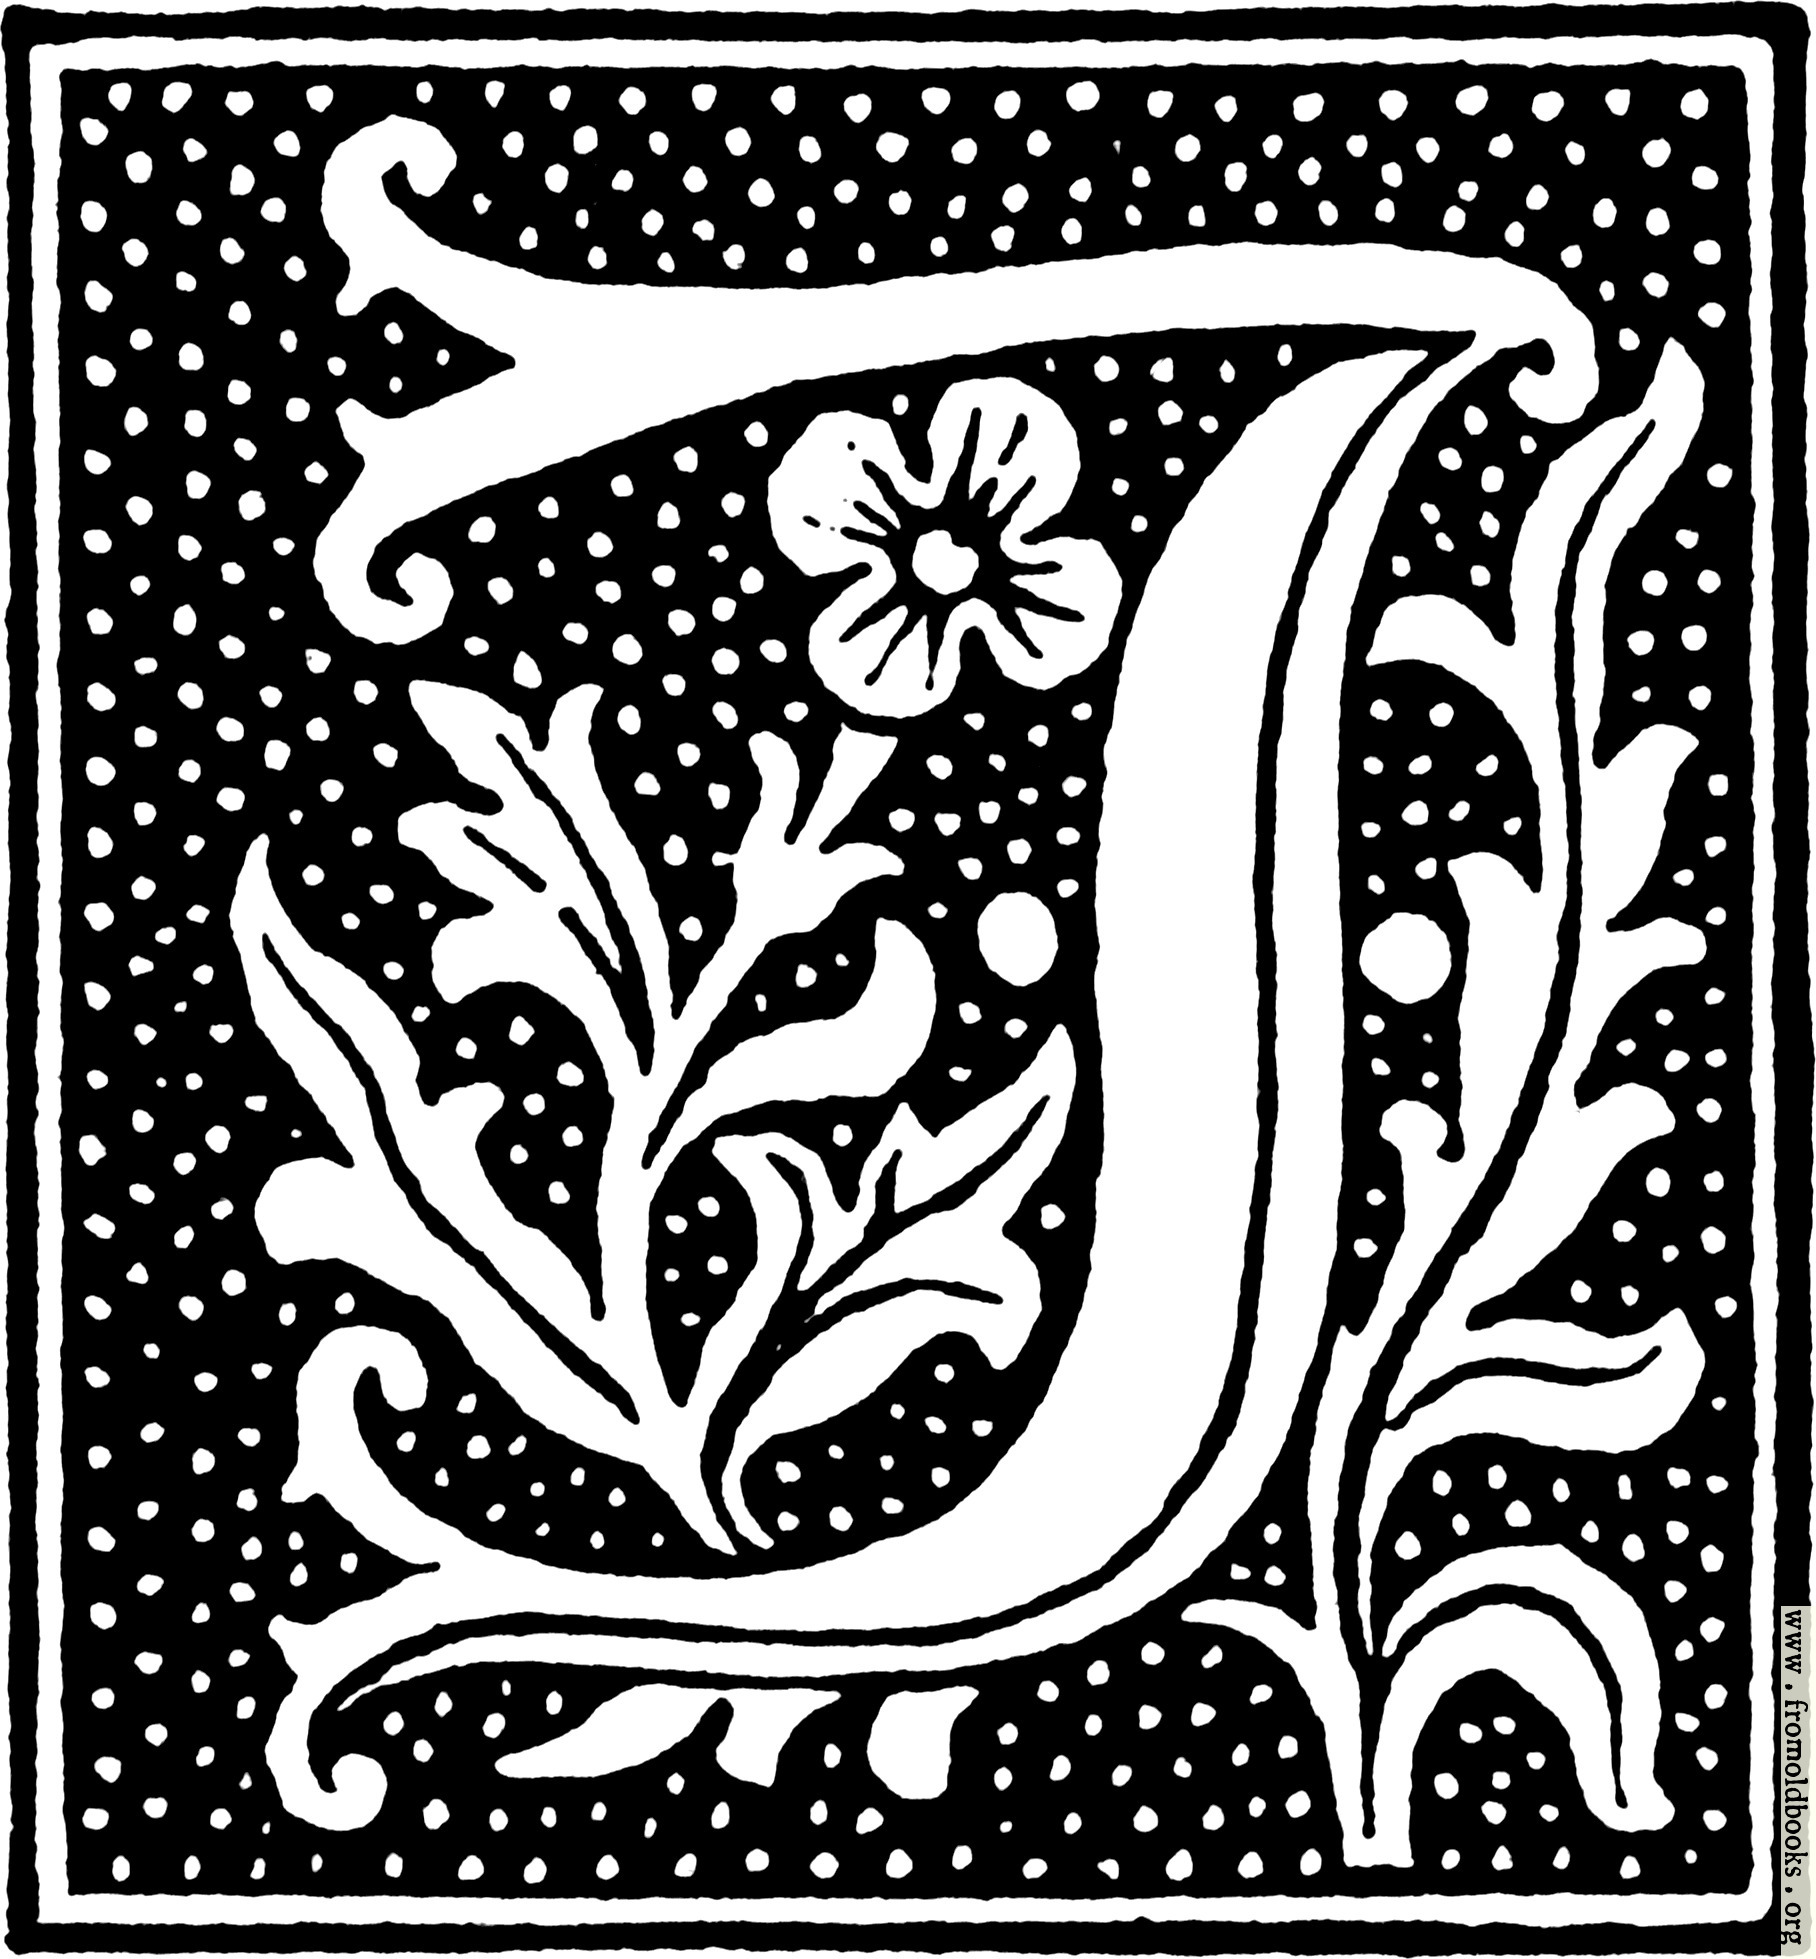 Clipart Initial Letter J From Beginning Of The 16th Century